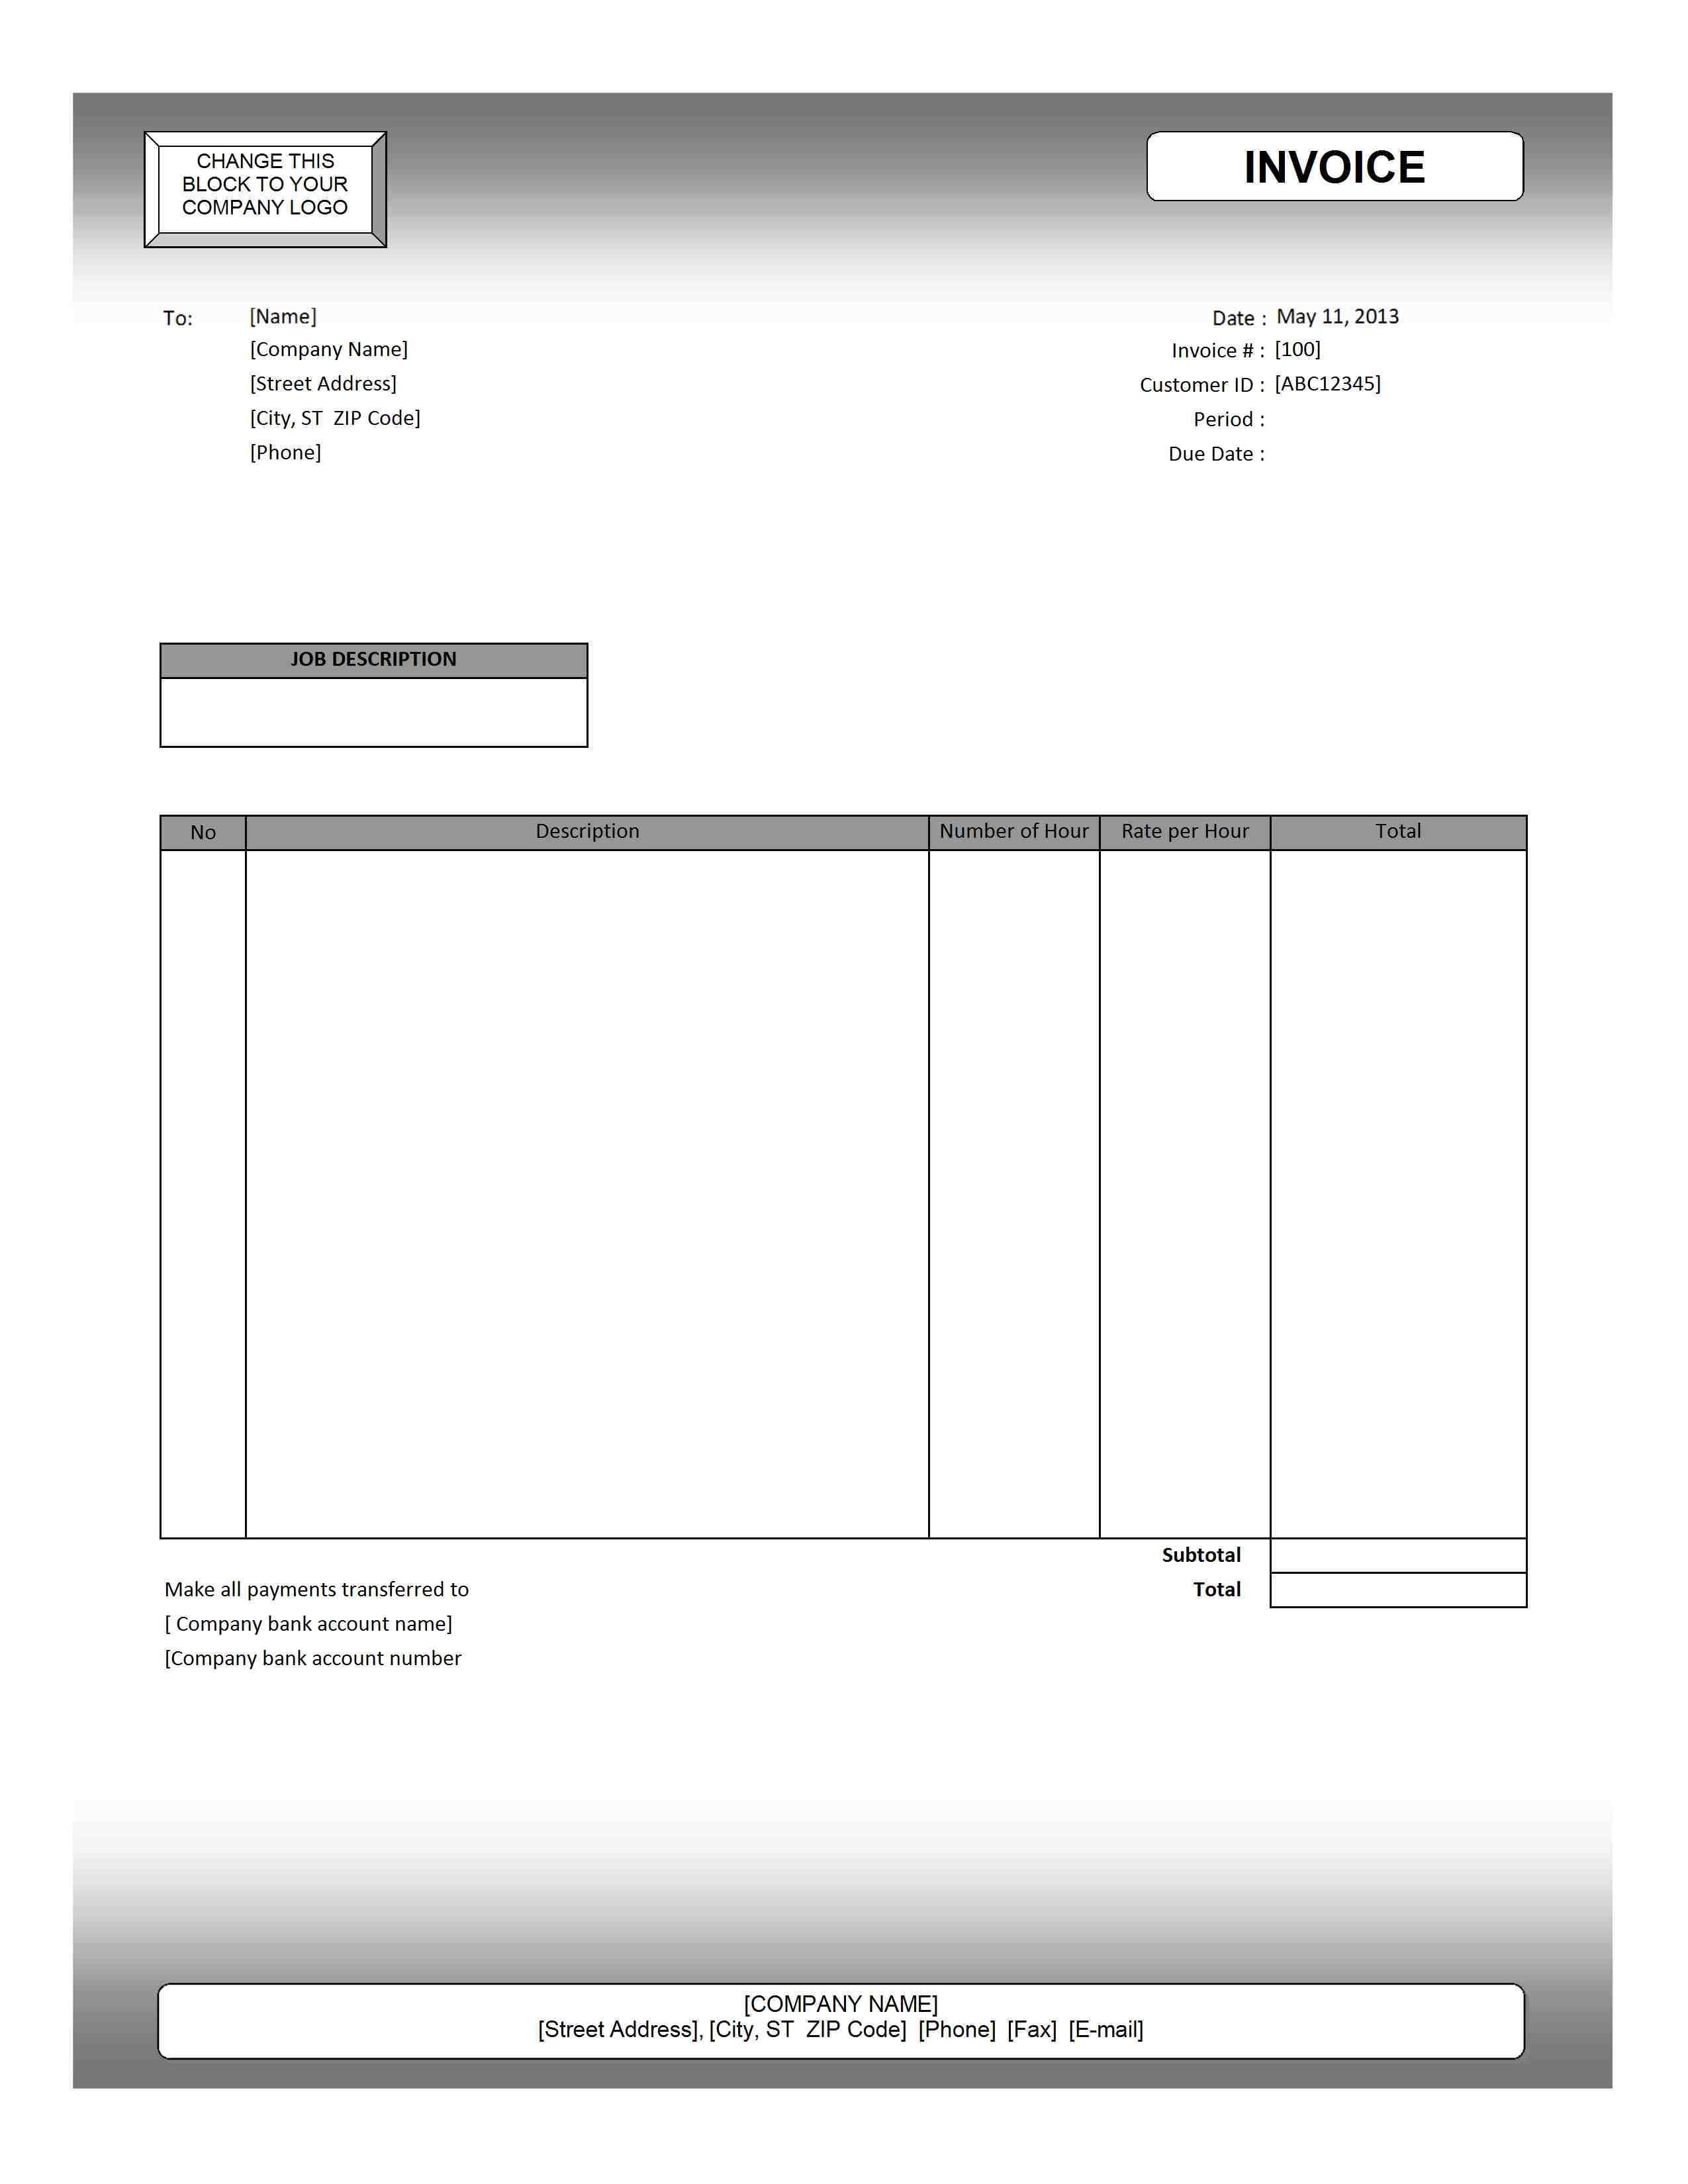 invoice models example of invoice for services rendered service microsoft service invoice template